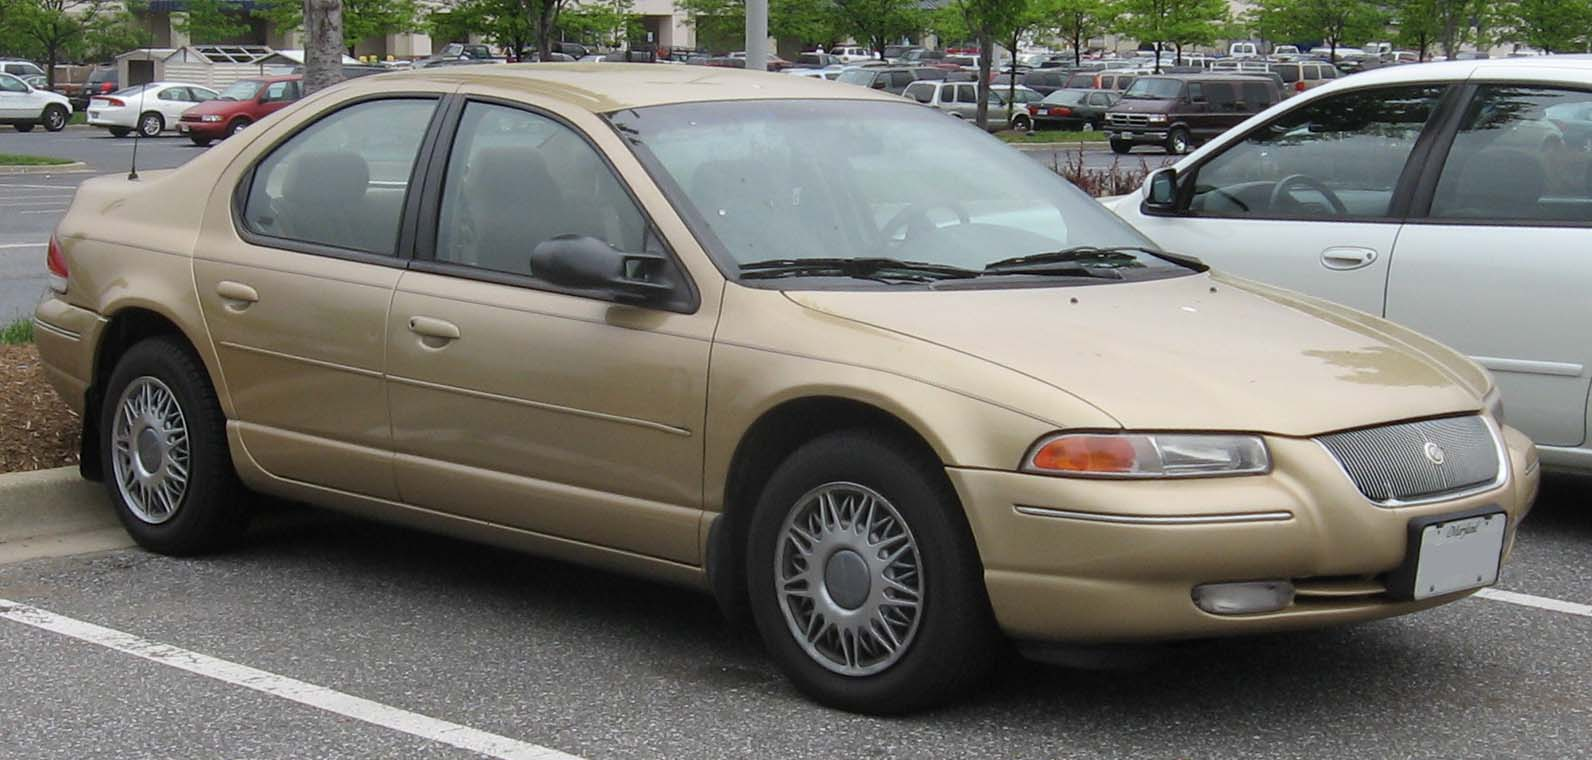 1998 Chrysler Cirrus #12